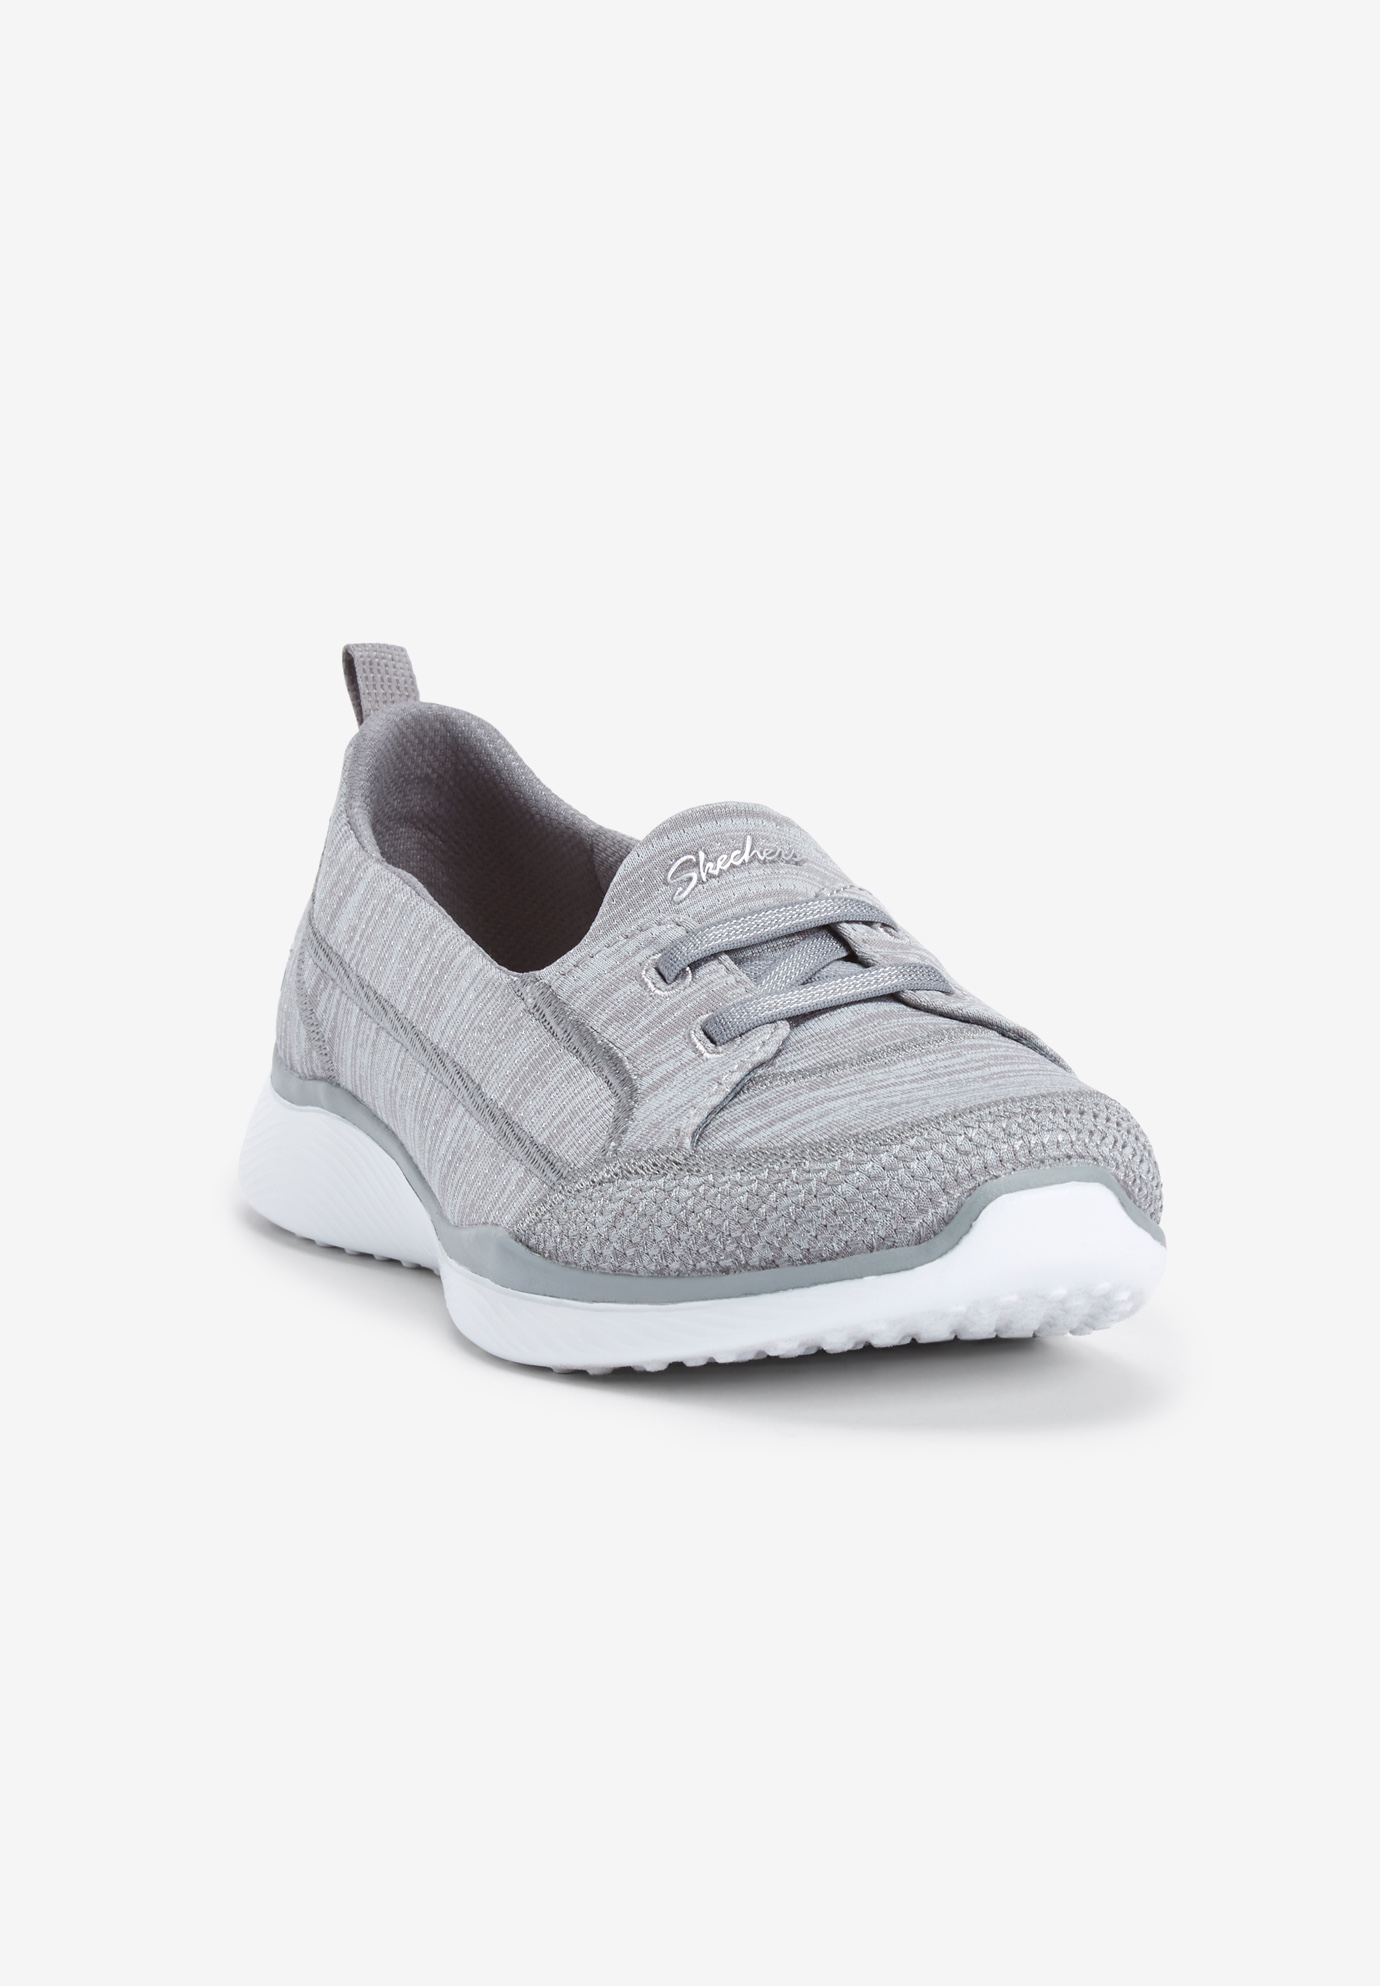 The Microburst 2.0 Best Ever Sneaker by Skechers®,